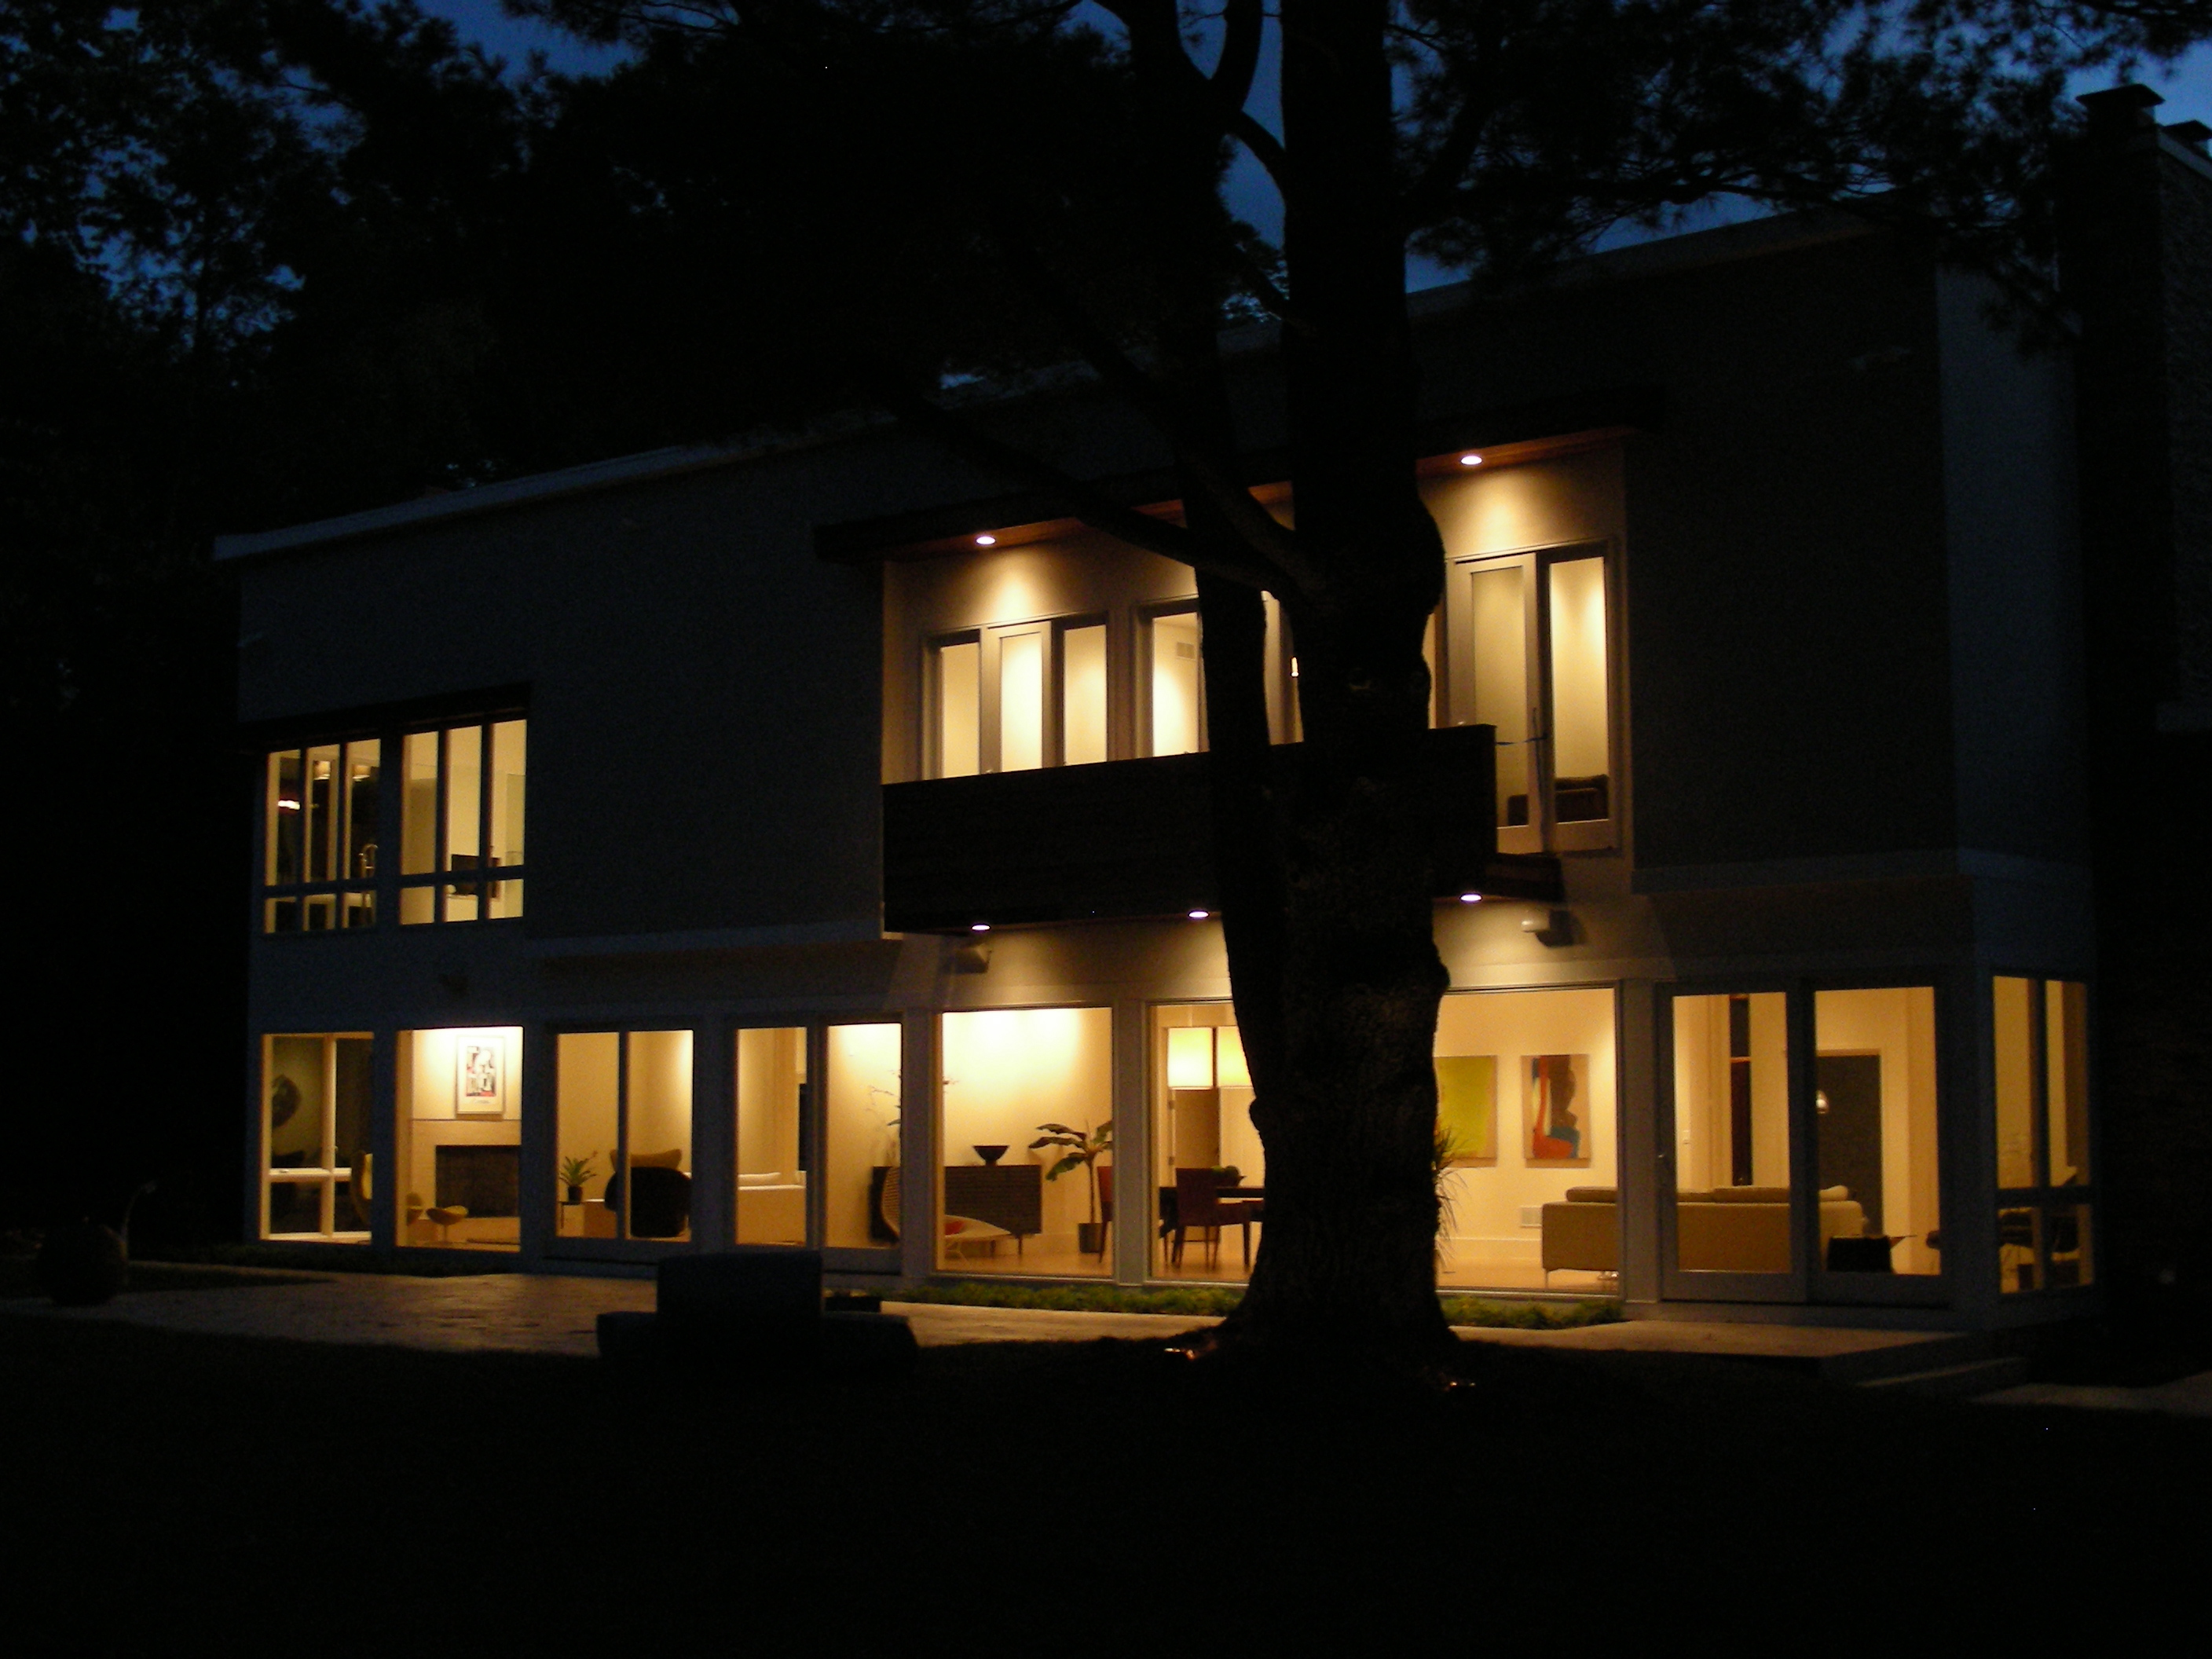 Second Short Hills project shows a night shot of lighting composition in the back of the house